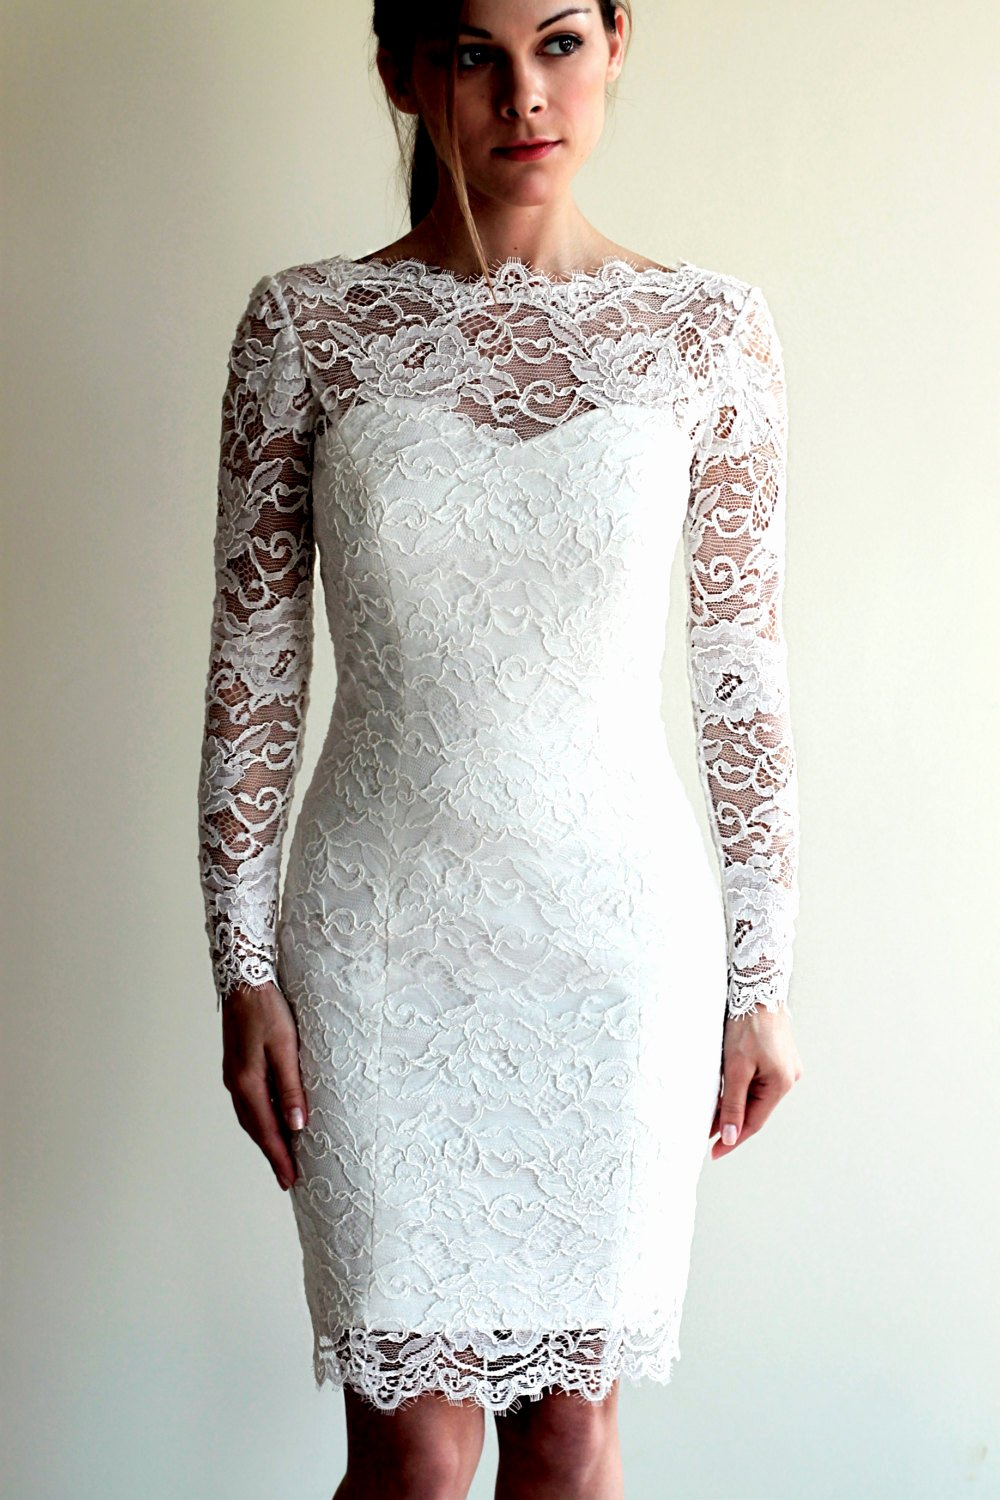 Simple Wedding Dress Patterns Awesome Crochet Wedding Dress Patterns Free